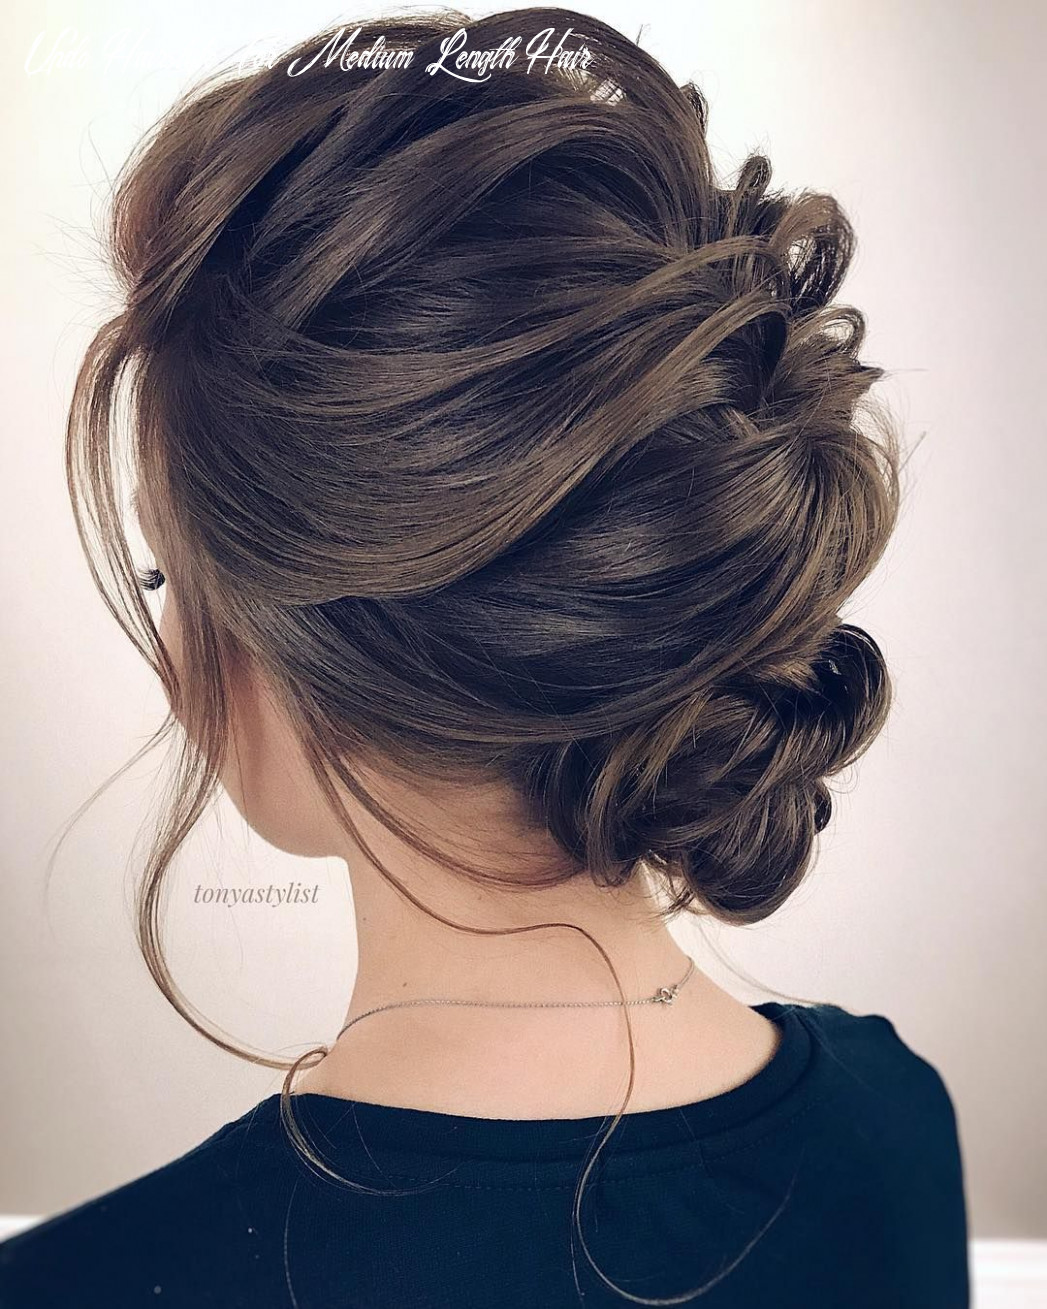 Prom hairstyles medium braids 9 easy updo hairstyles for medium